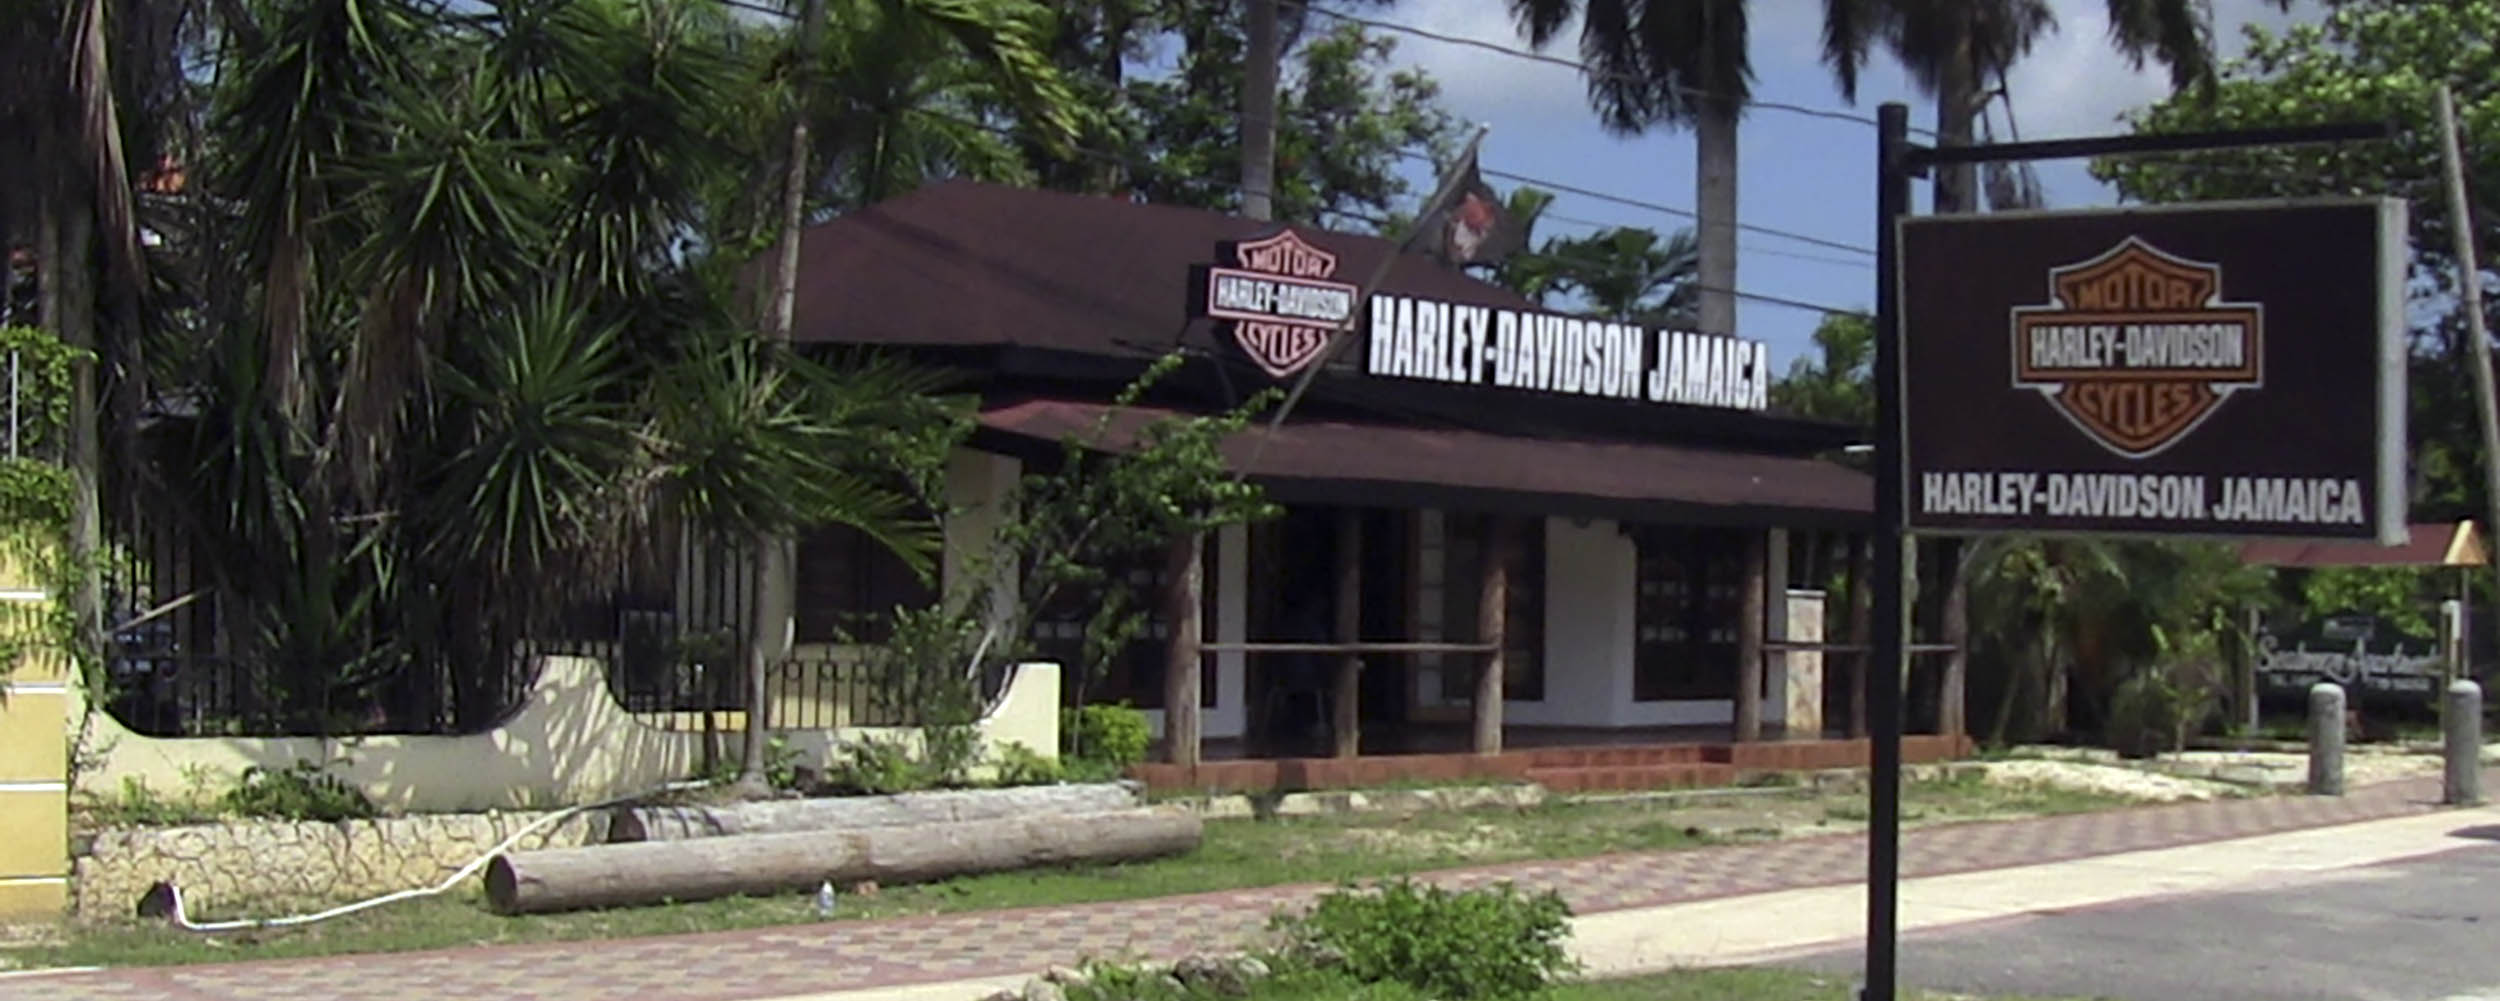 Harley-Davidson - Norman Manley Boulevard - Negril Jamaica